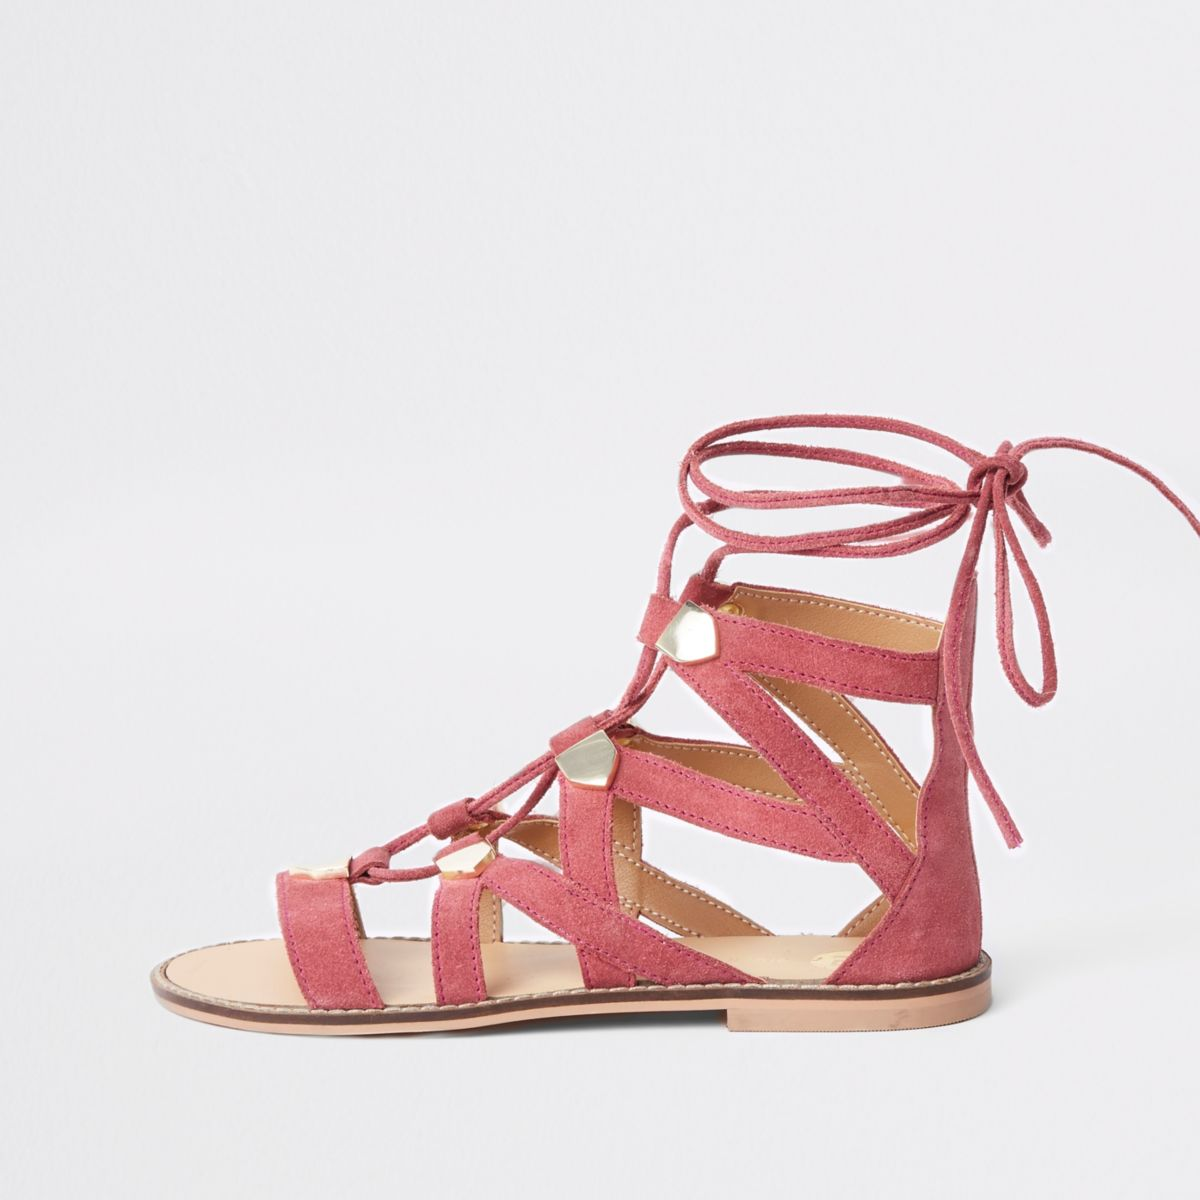 Pink suede caged tie up sandal